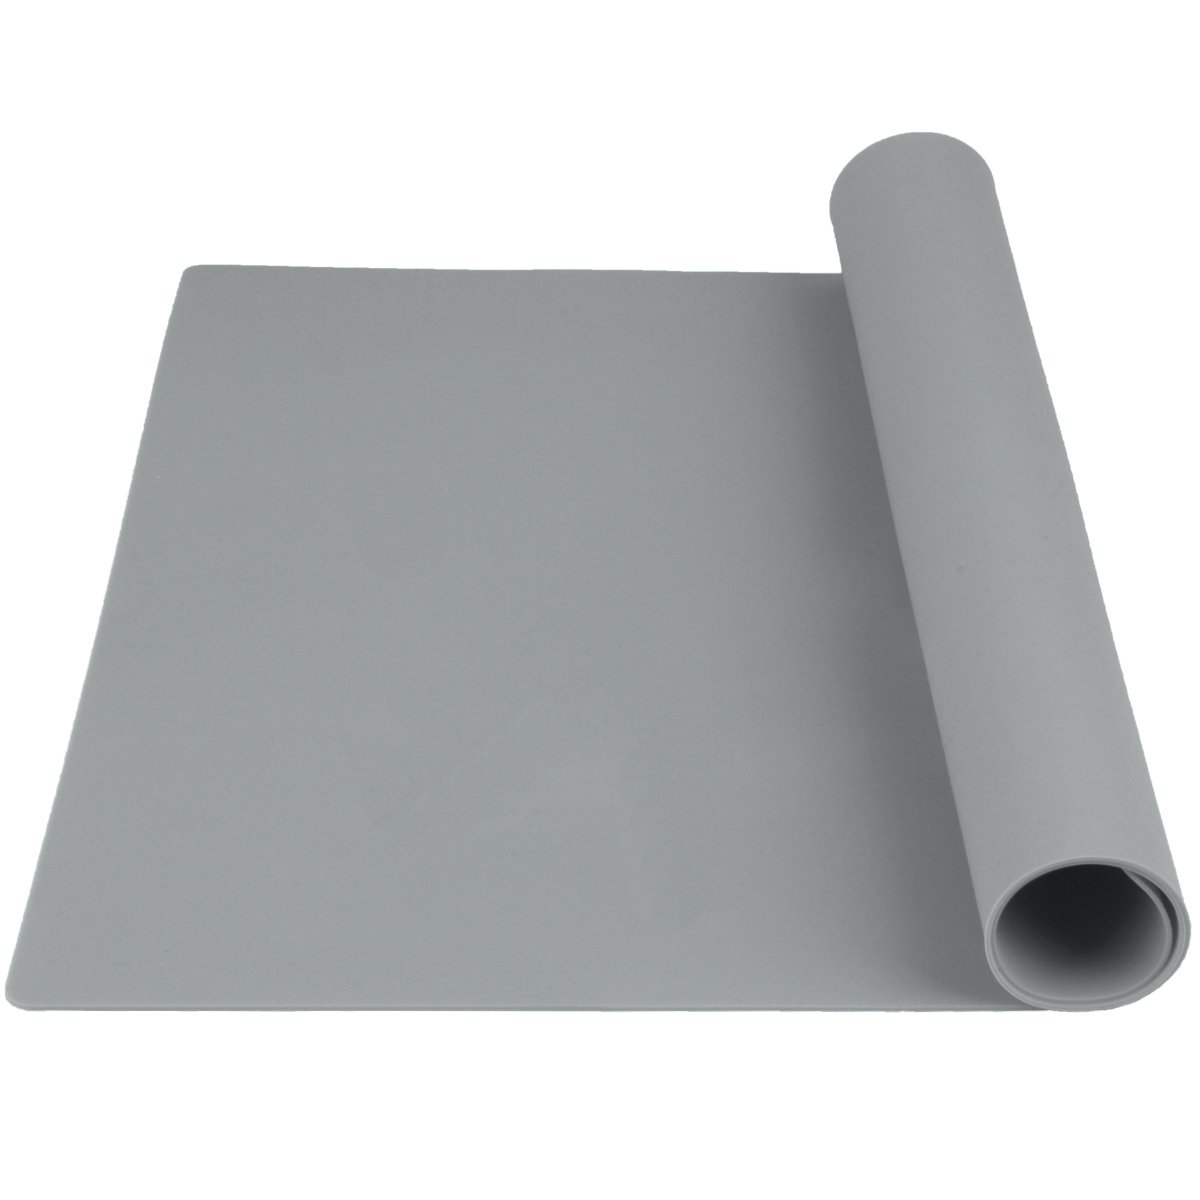 "Bakingfun Large Silicone Baking Mat, Pastry Mat for Rolling Dough, Fondant Mat, Heat Resistant Table Mat Silicone Placemat, Countertop Protector, Pure Color, 23.6"" 15.7"" (Gray)"